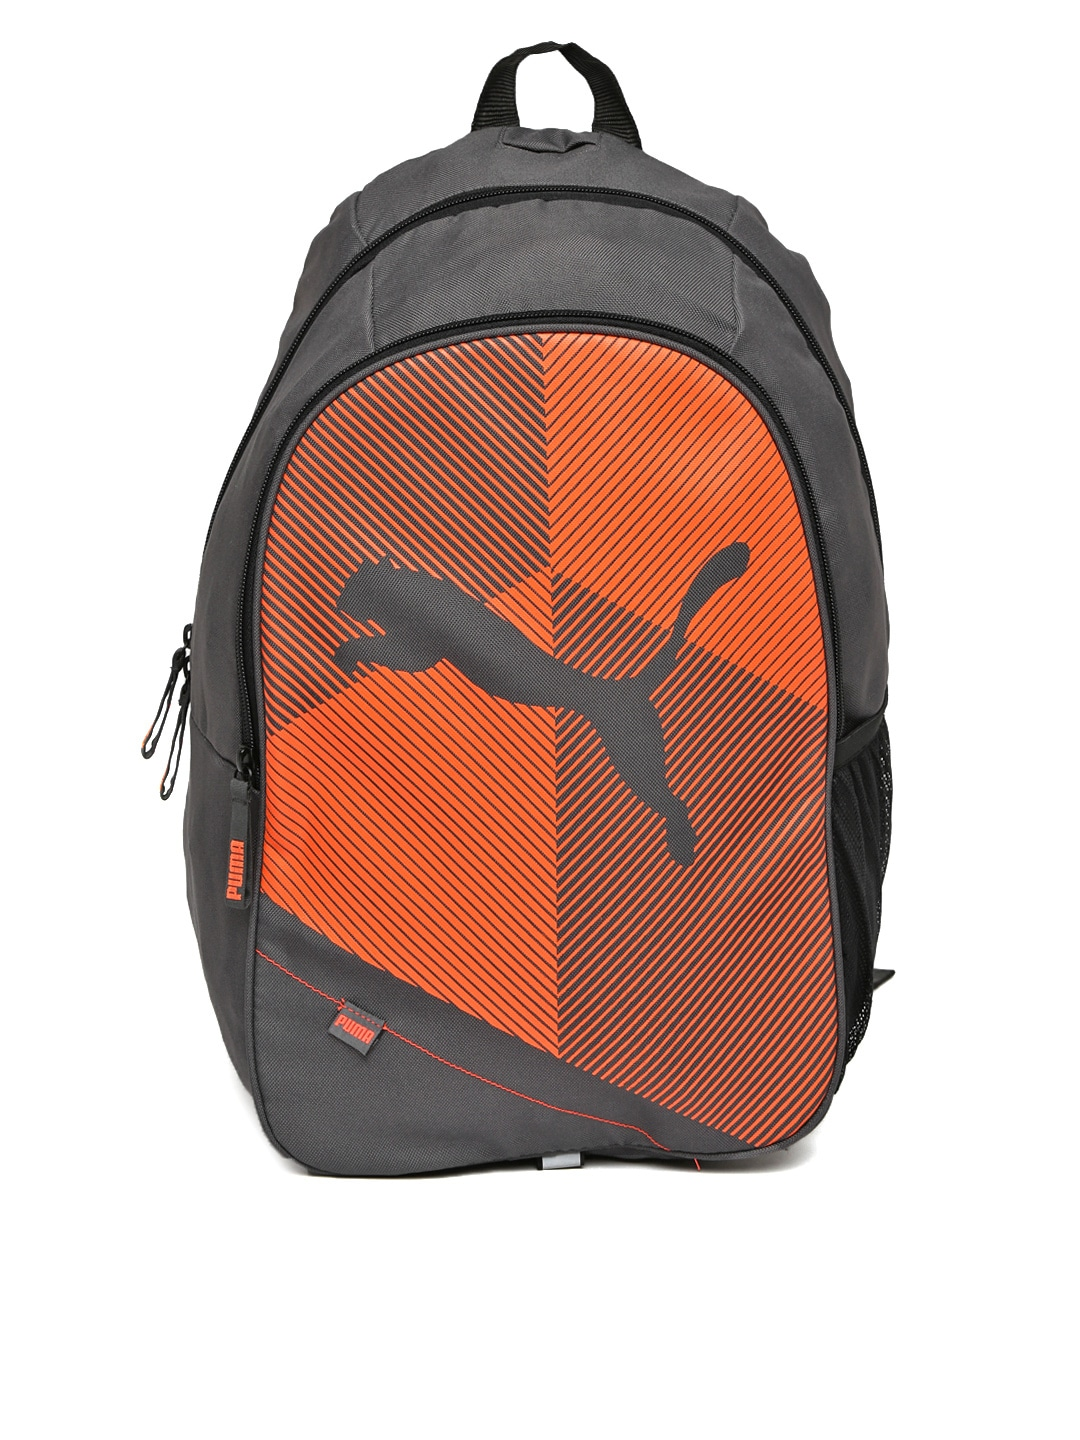 Puma 7171204 Unisex Echo Plus Grey And Orange Backpack- Price in India a7fb88ee982a3